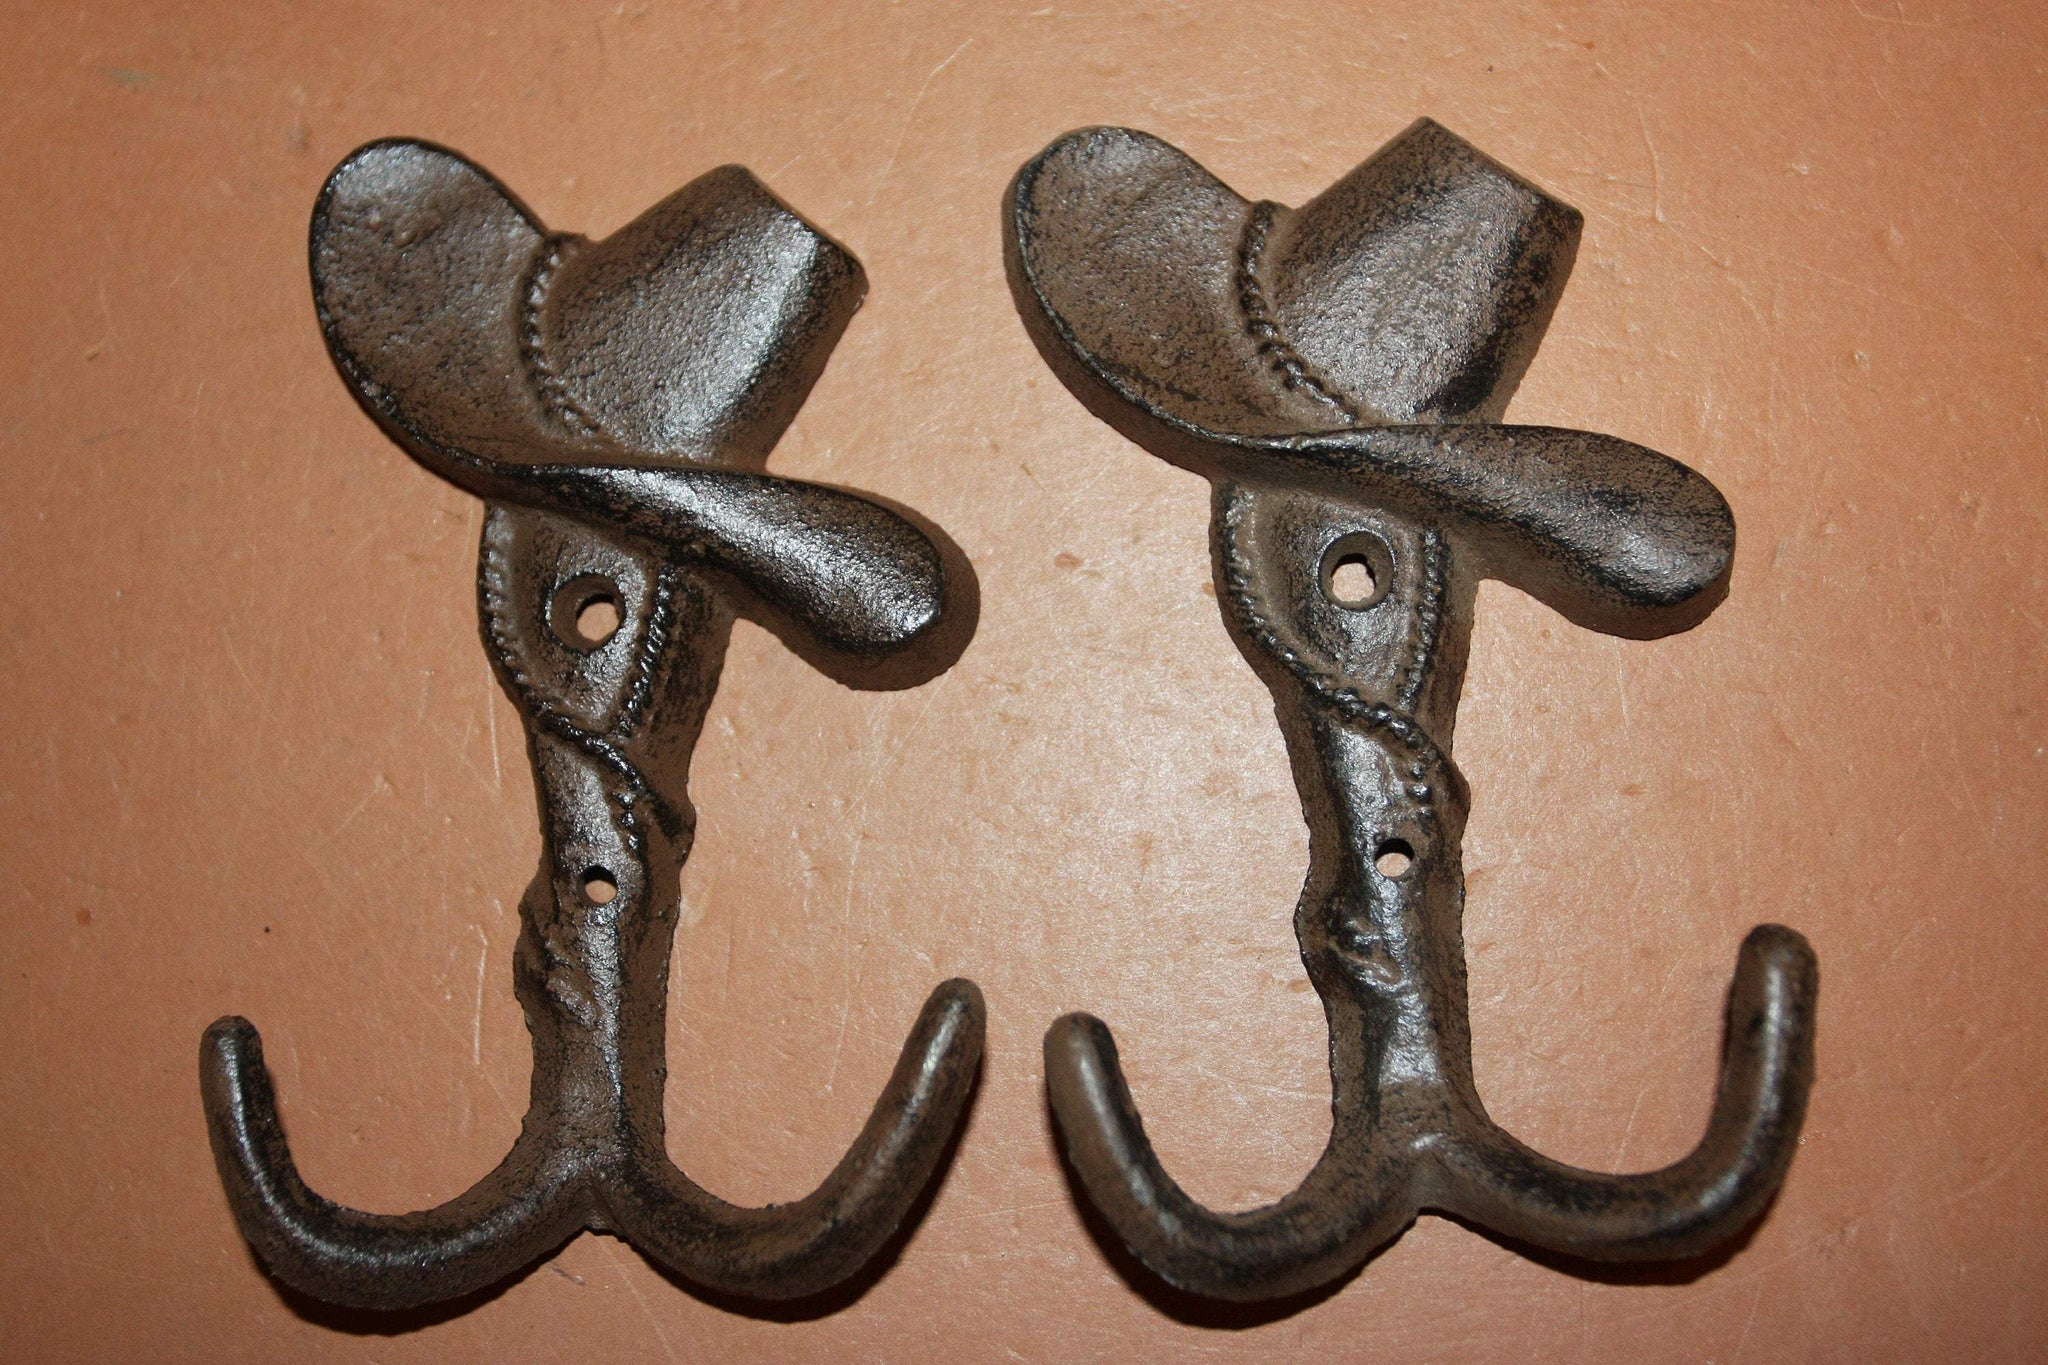 Country Western Towel Hooks Cast Iron 4 7/8 inch Cowboy Hat Farm Barn Ranch Decor, Volume Priced, W-6